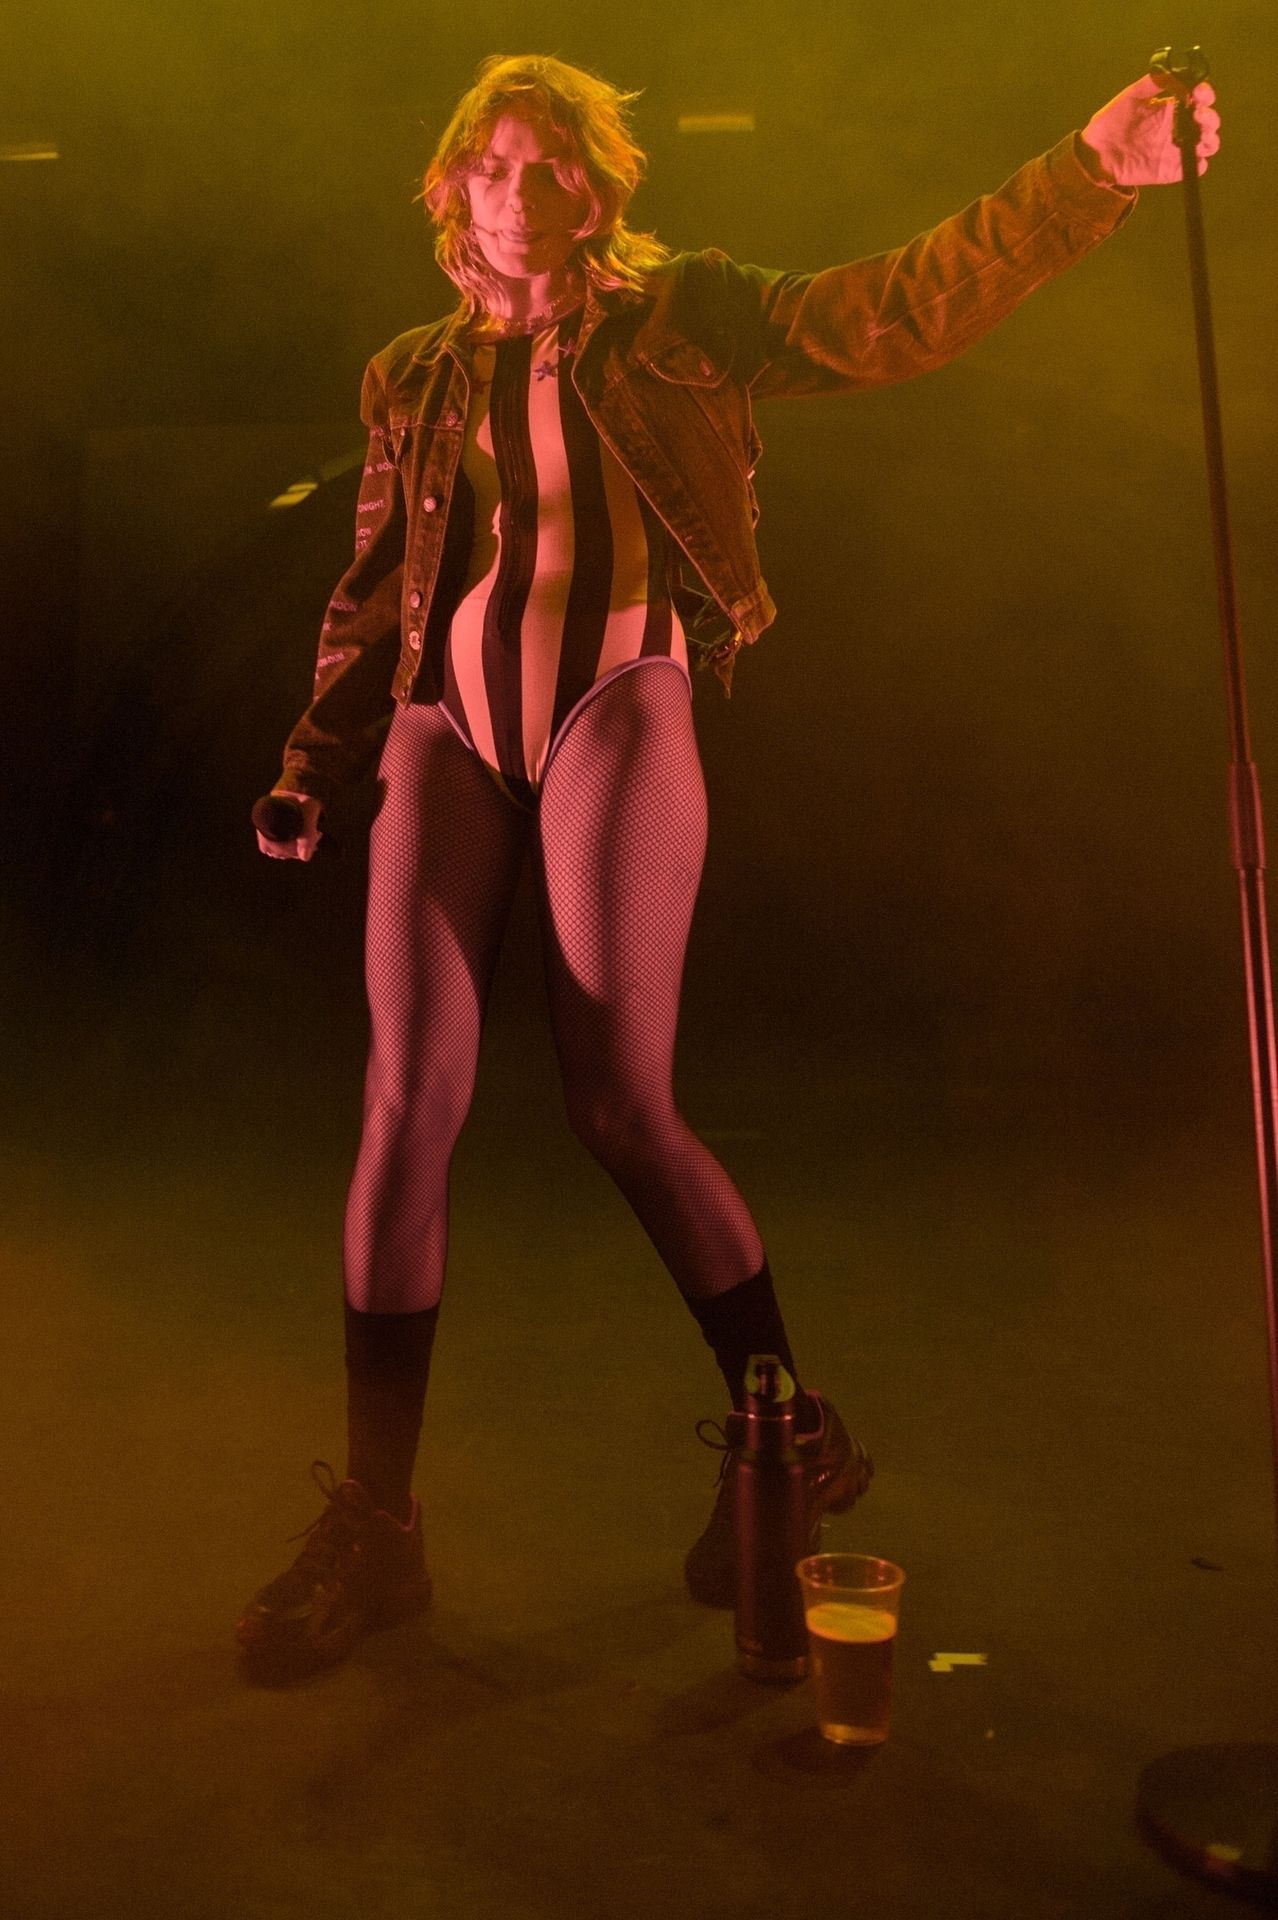 Tove Lo Is In Concert Performing Live At O2 Forum Kentish Town In London 0039